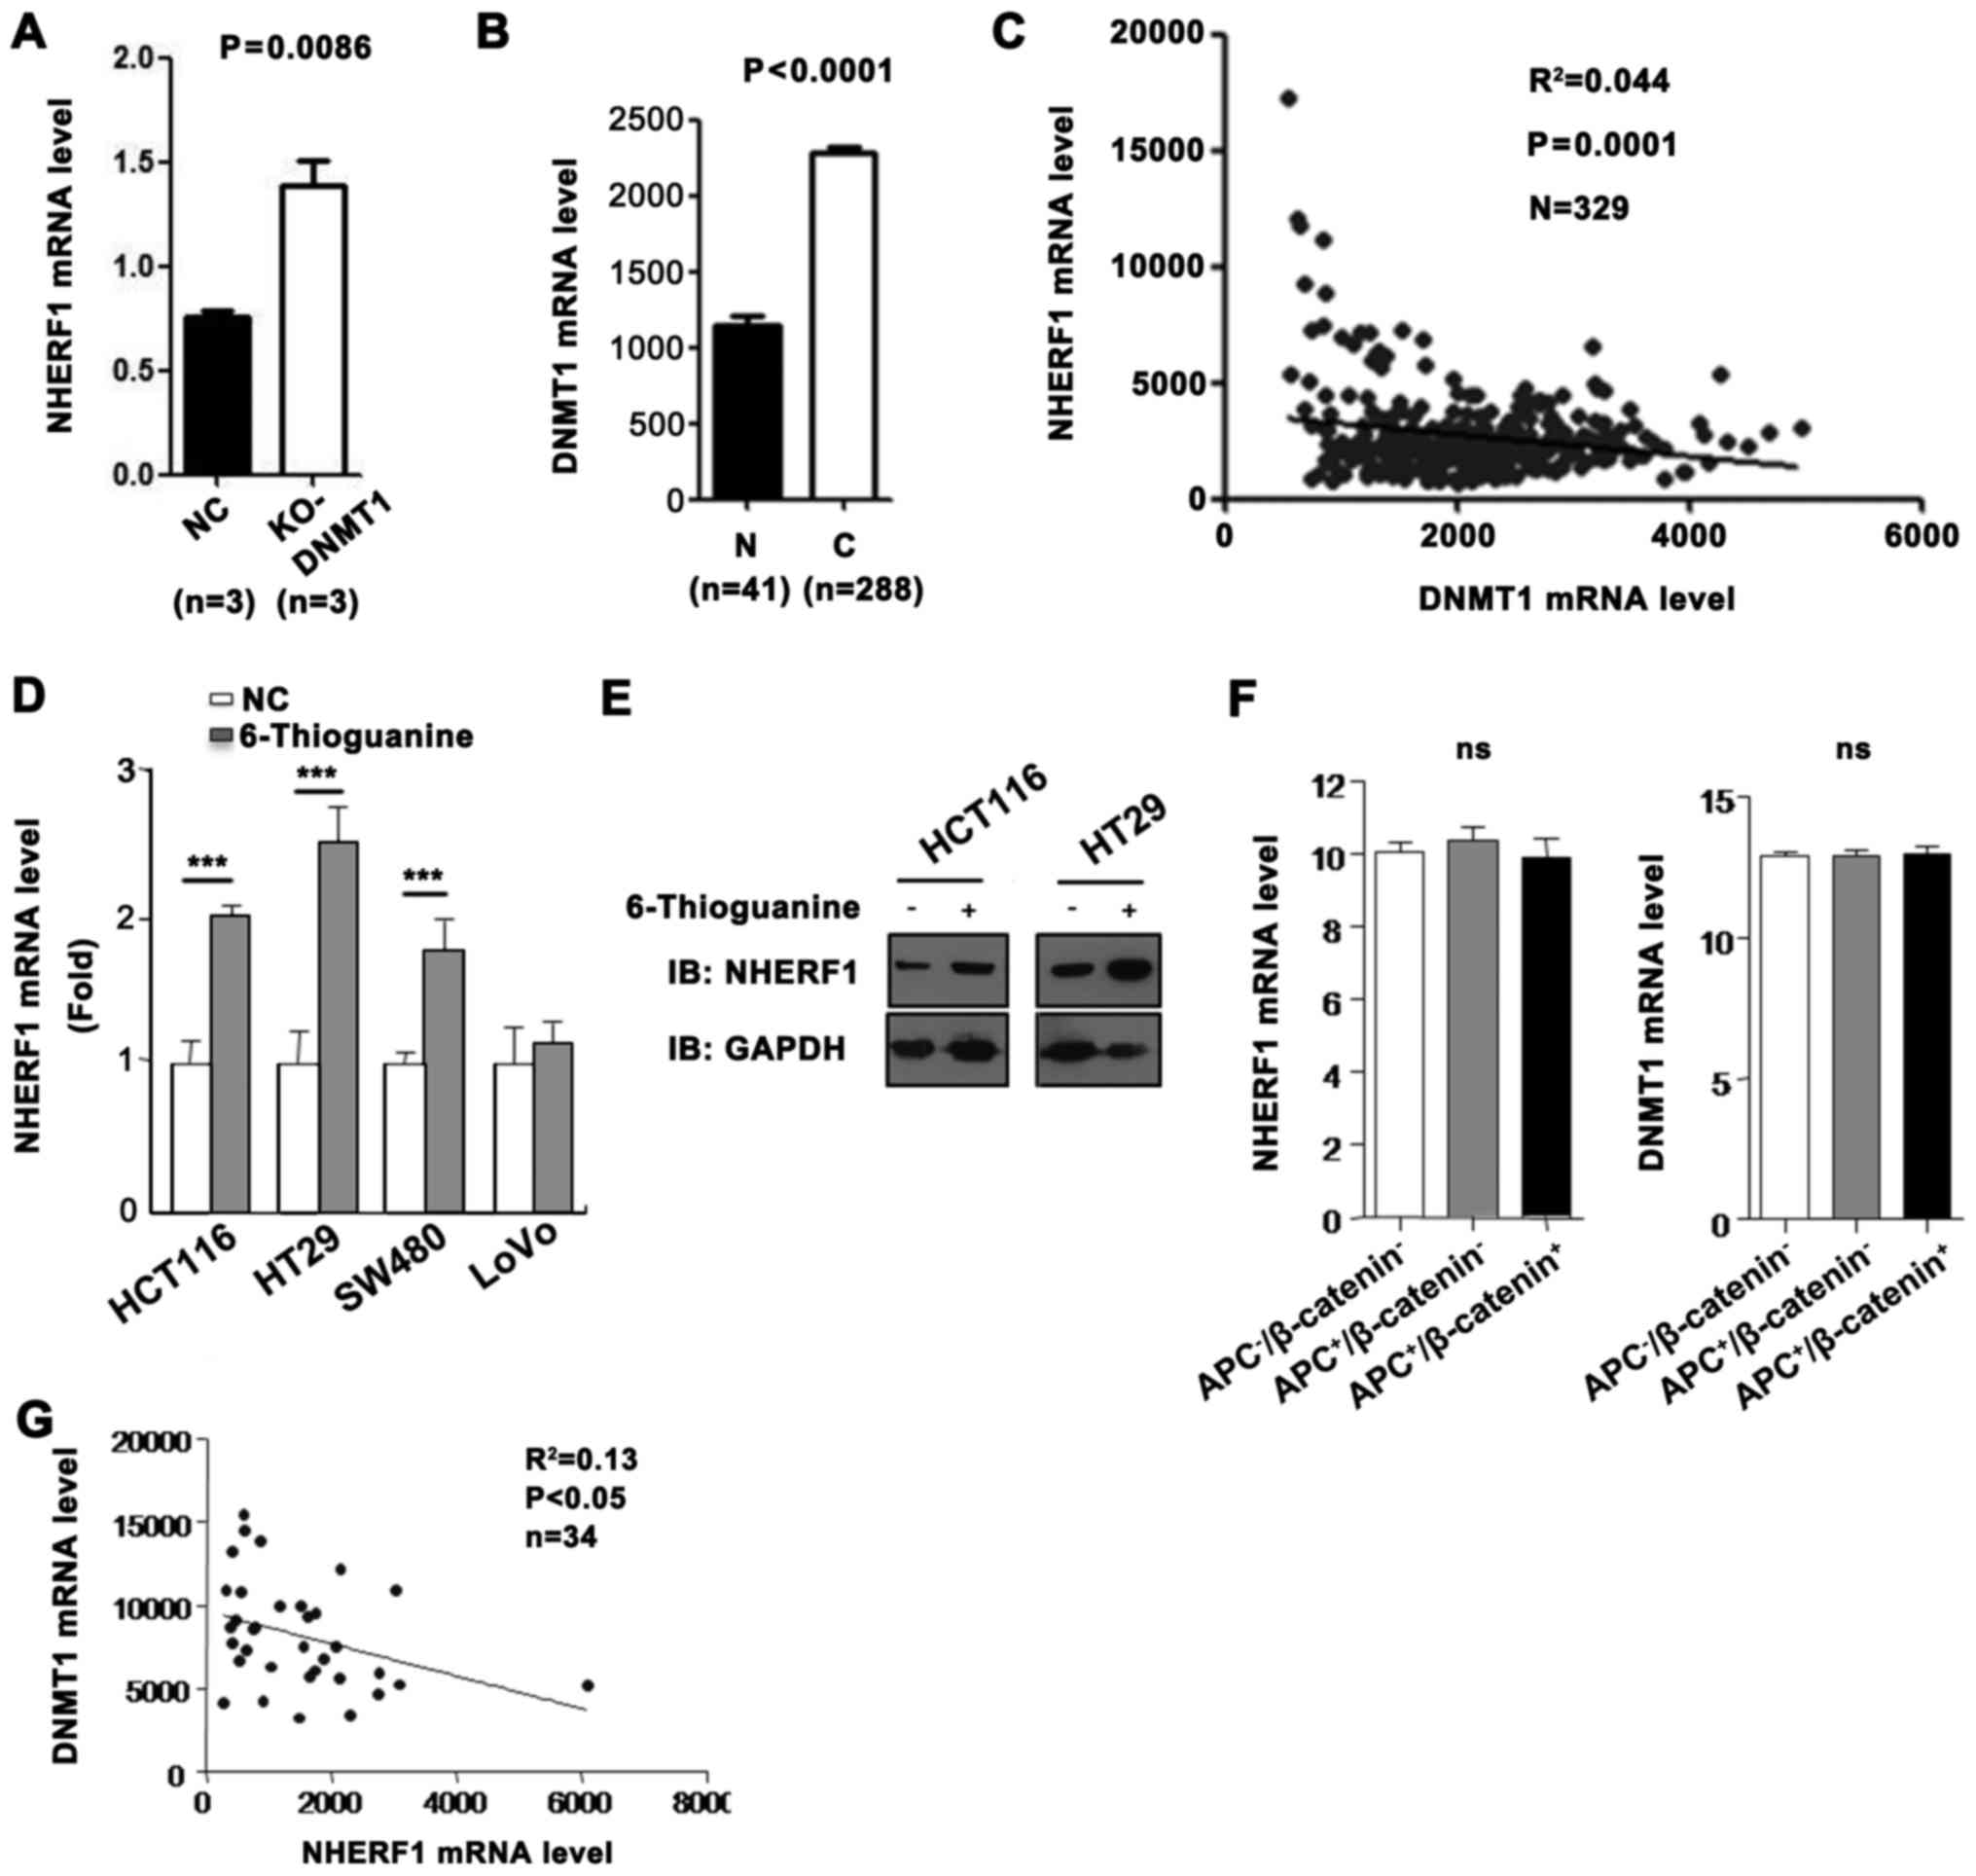 Wnt signaling pathway upregulates DNMT1 to trigger NHERF1 promoter